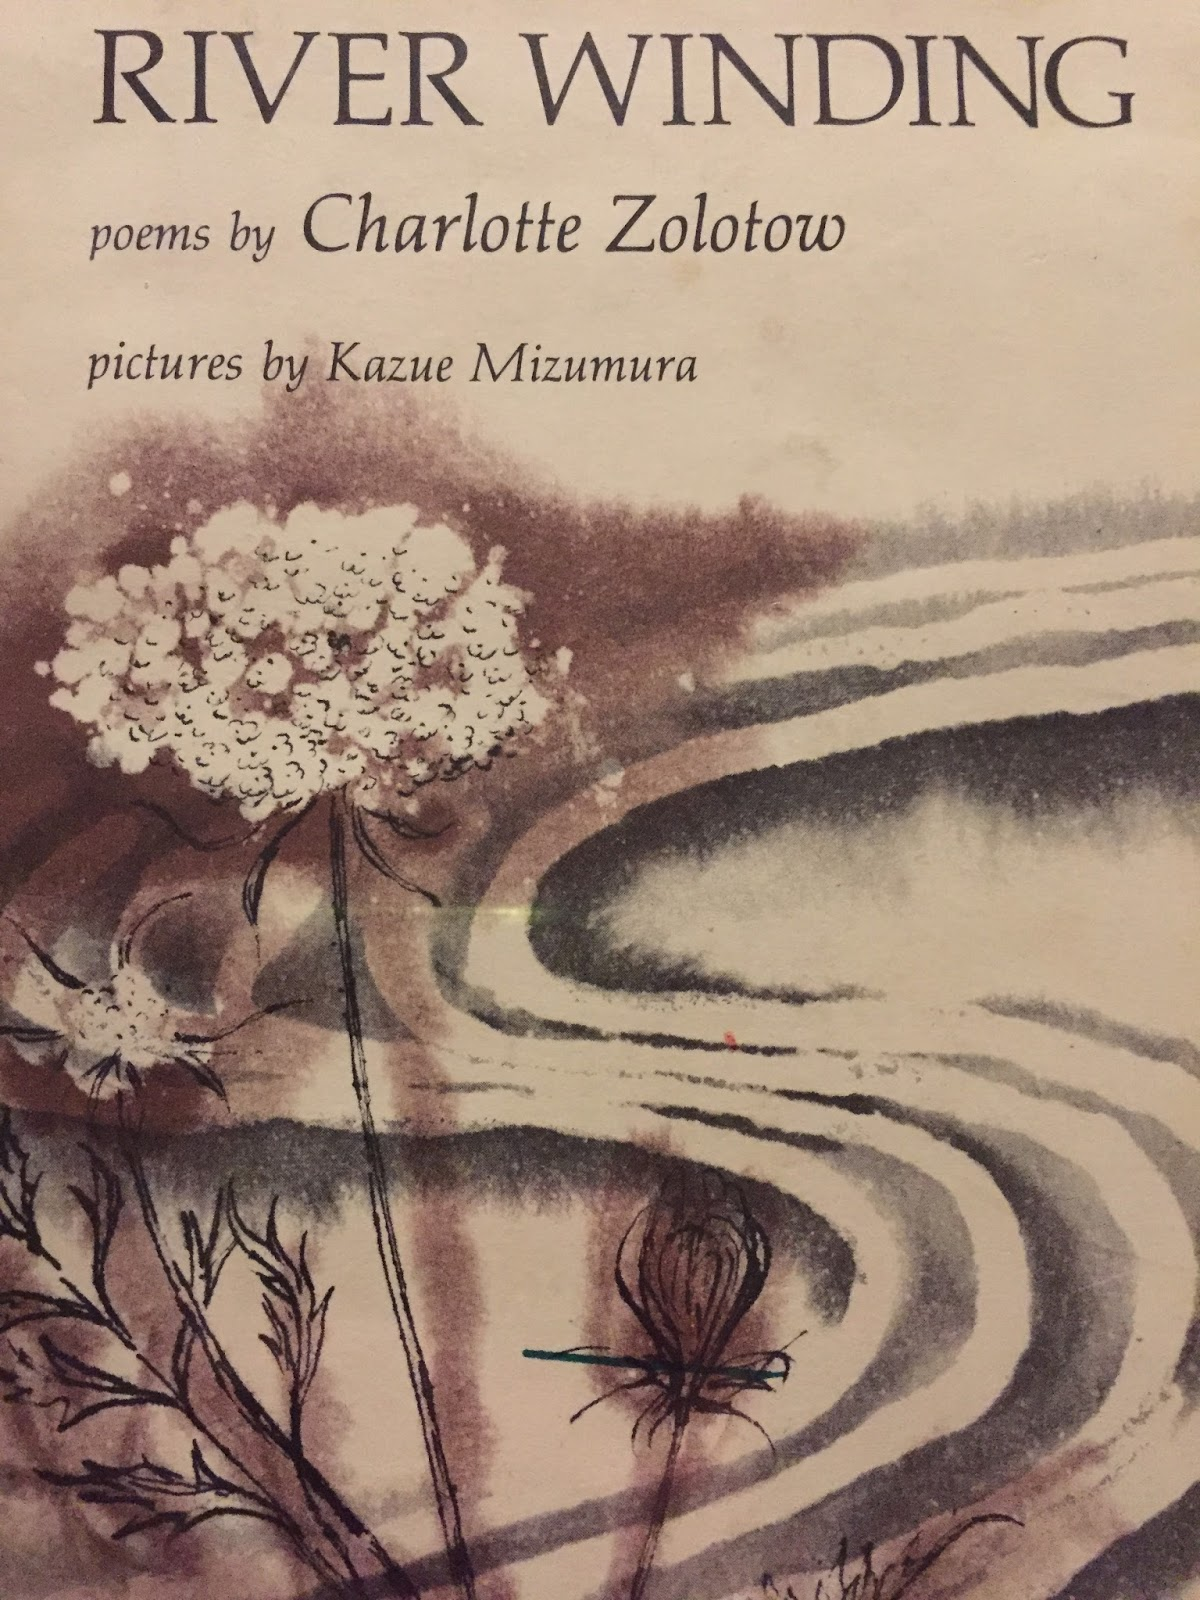 A year of reading poetry friday charlotte zolotow sciox Choice Image